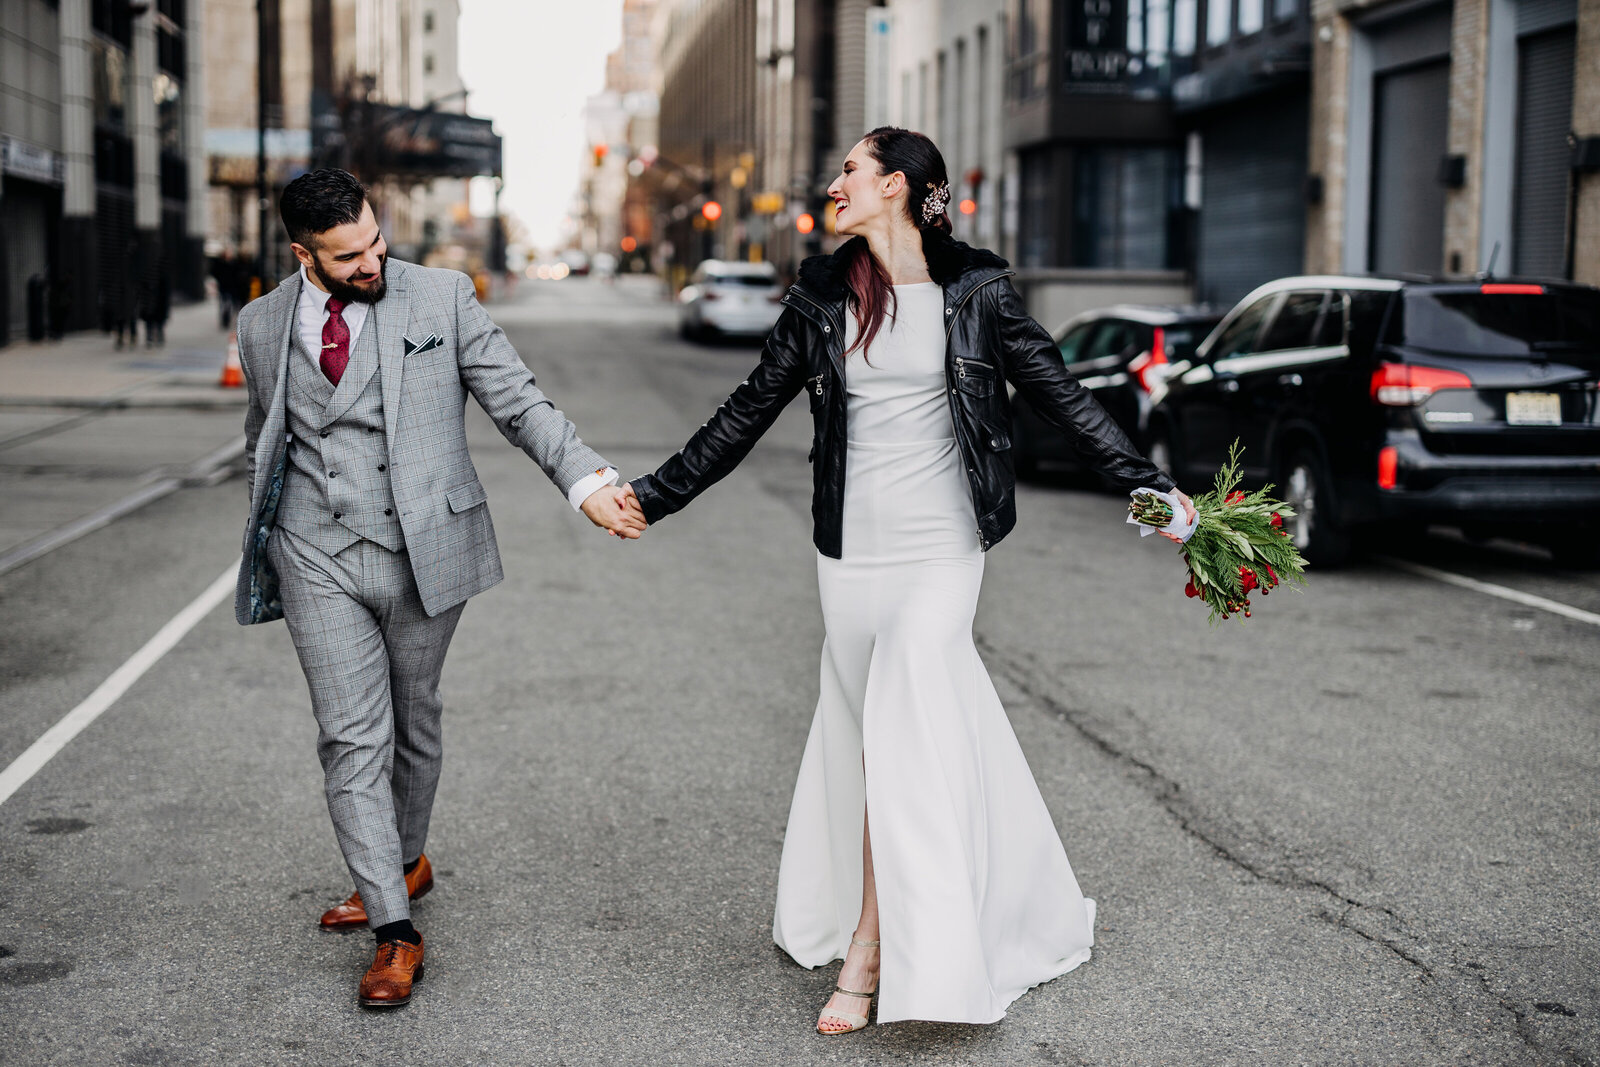 bride with leather jacket and groom walking down city street